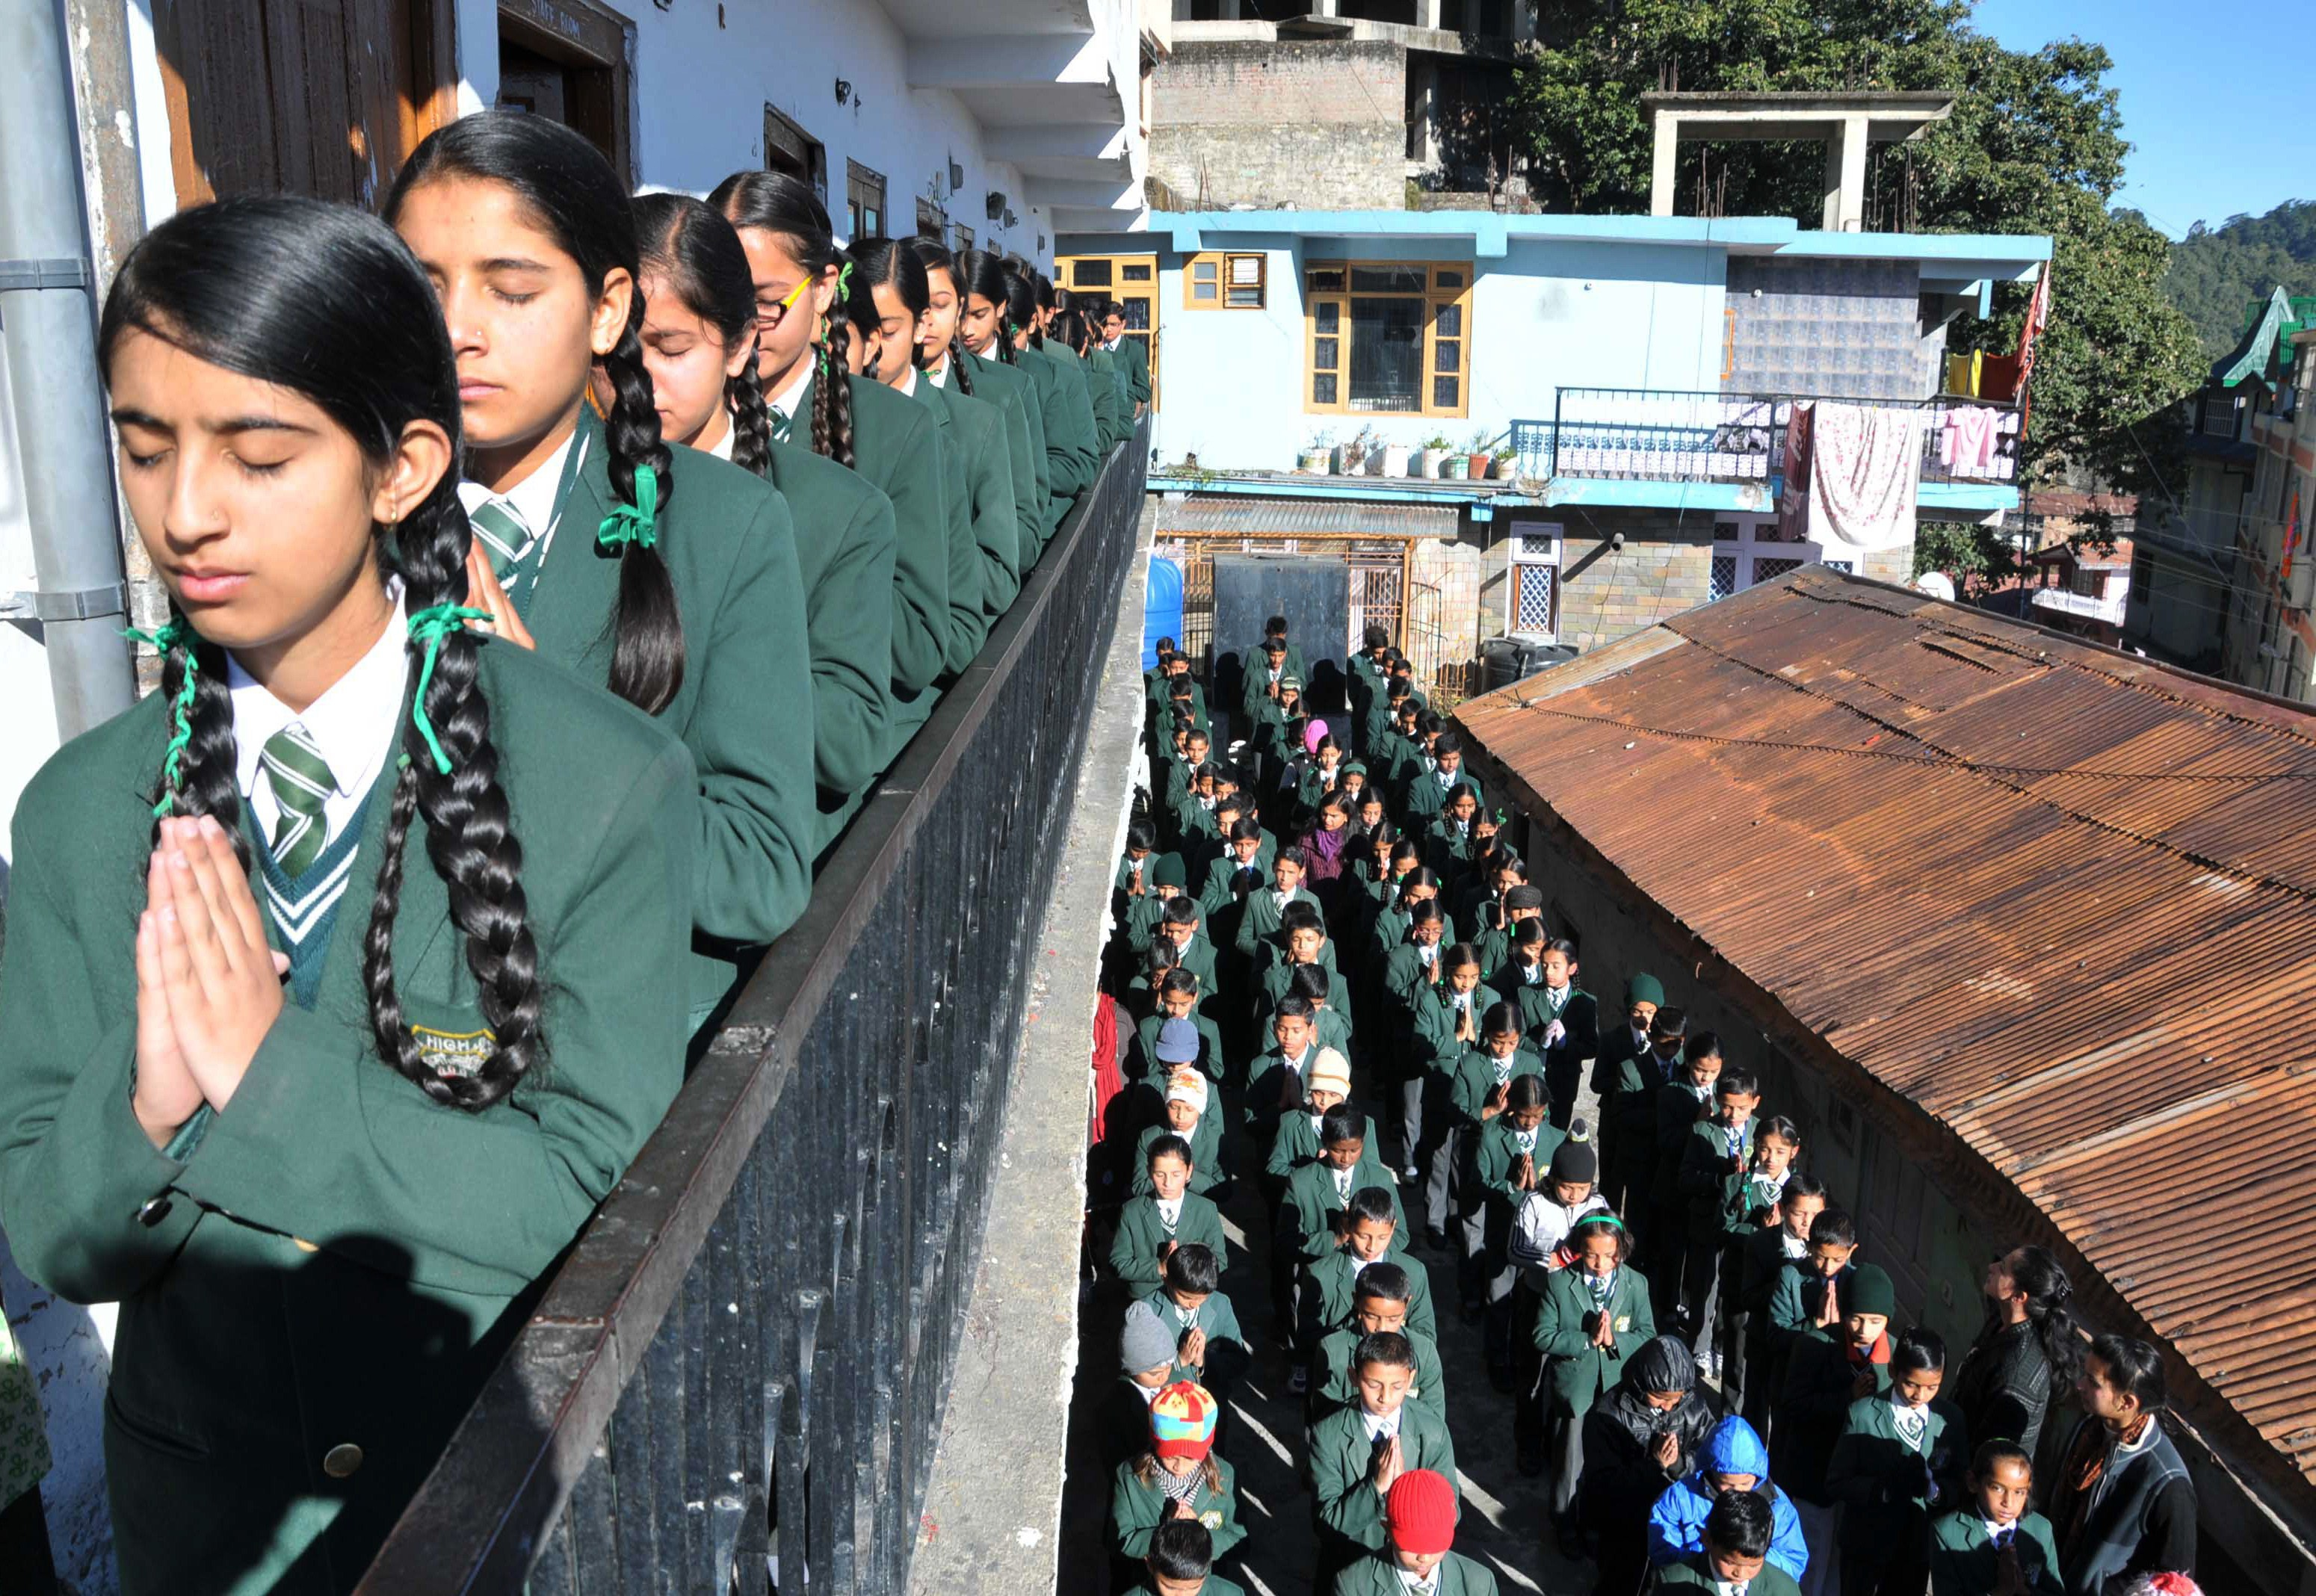 Schoolchildren pray during morning assembly at their school in Shimla, India, on Dec. 17, 2014, as they pay tribute to slain students and staff after an attack on an army school in Peshawar, Pakistan